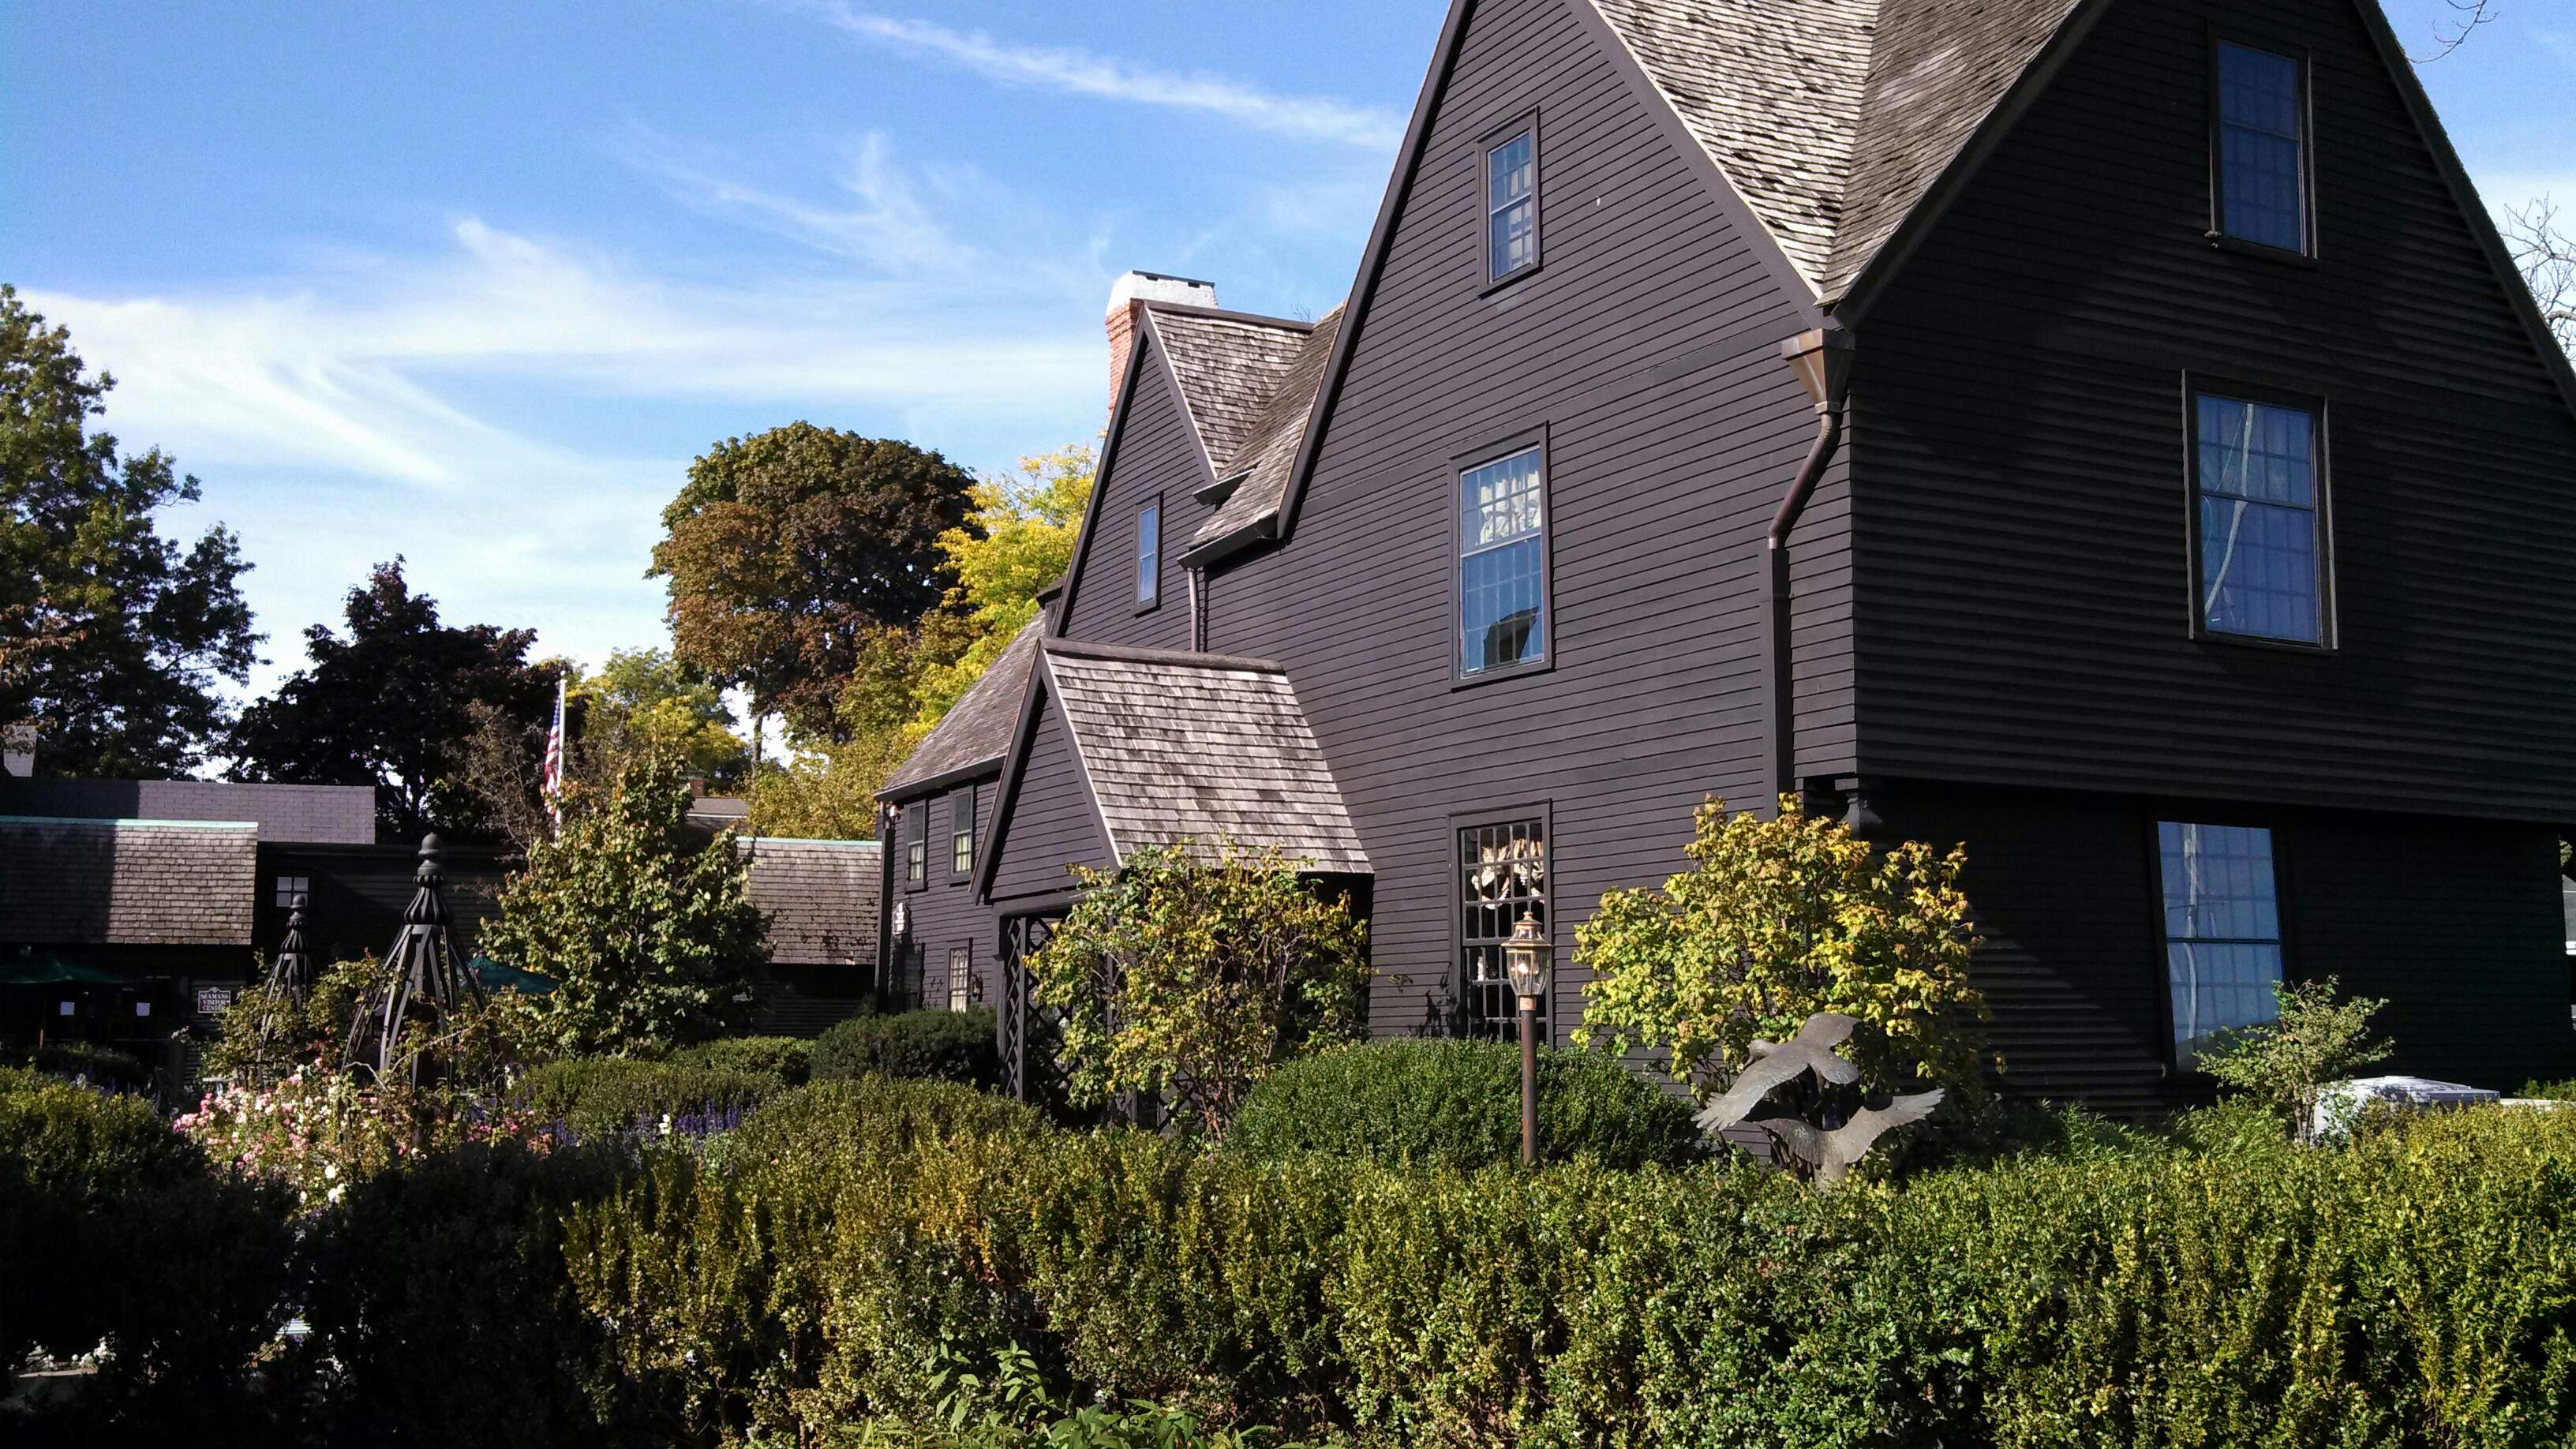 the house of the seven gables thesis House of the seven gables dissertation writing service to custom write a doctorate house of the seven gables dissertation for a university thesis research proposal.